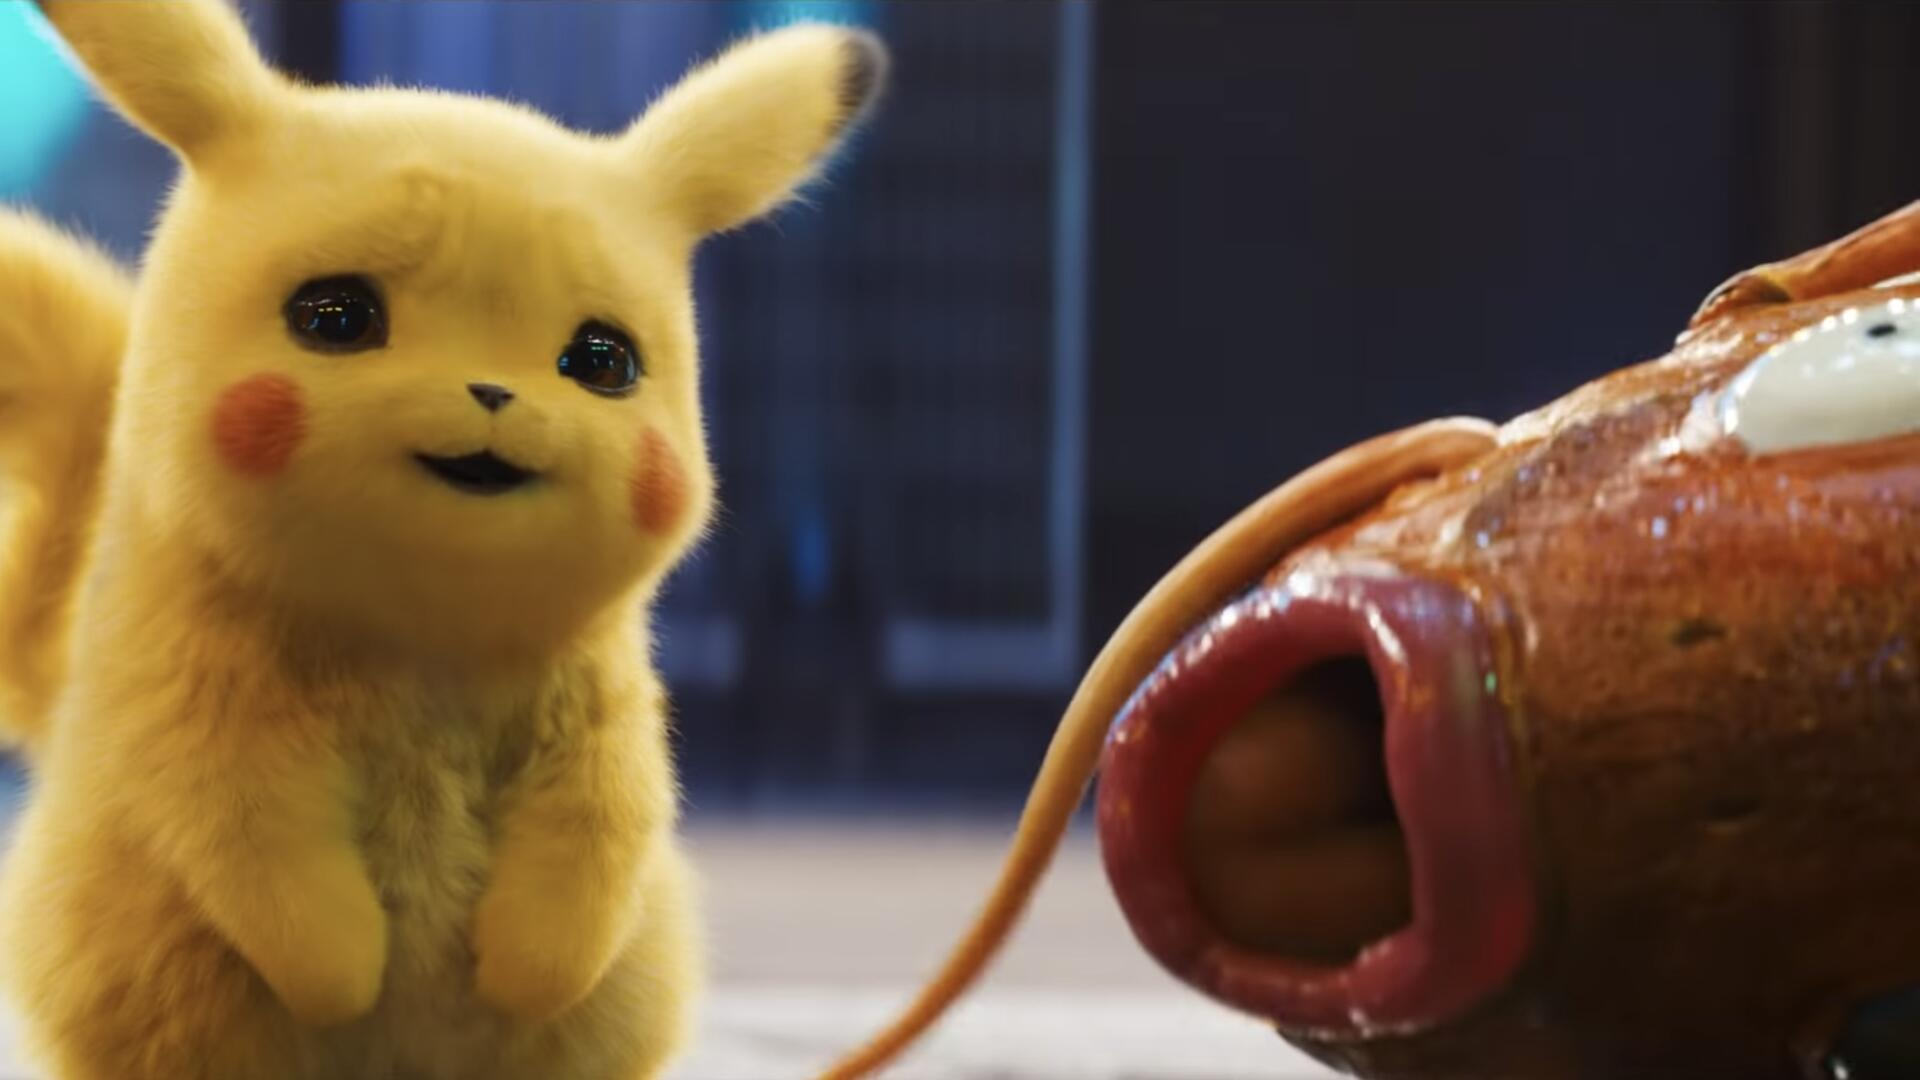 New Detective Pikachu Teaser Shows Off Pokemon Like Squirtle, Treecko, Purrloin, and More